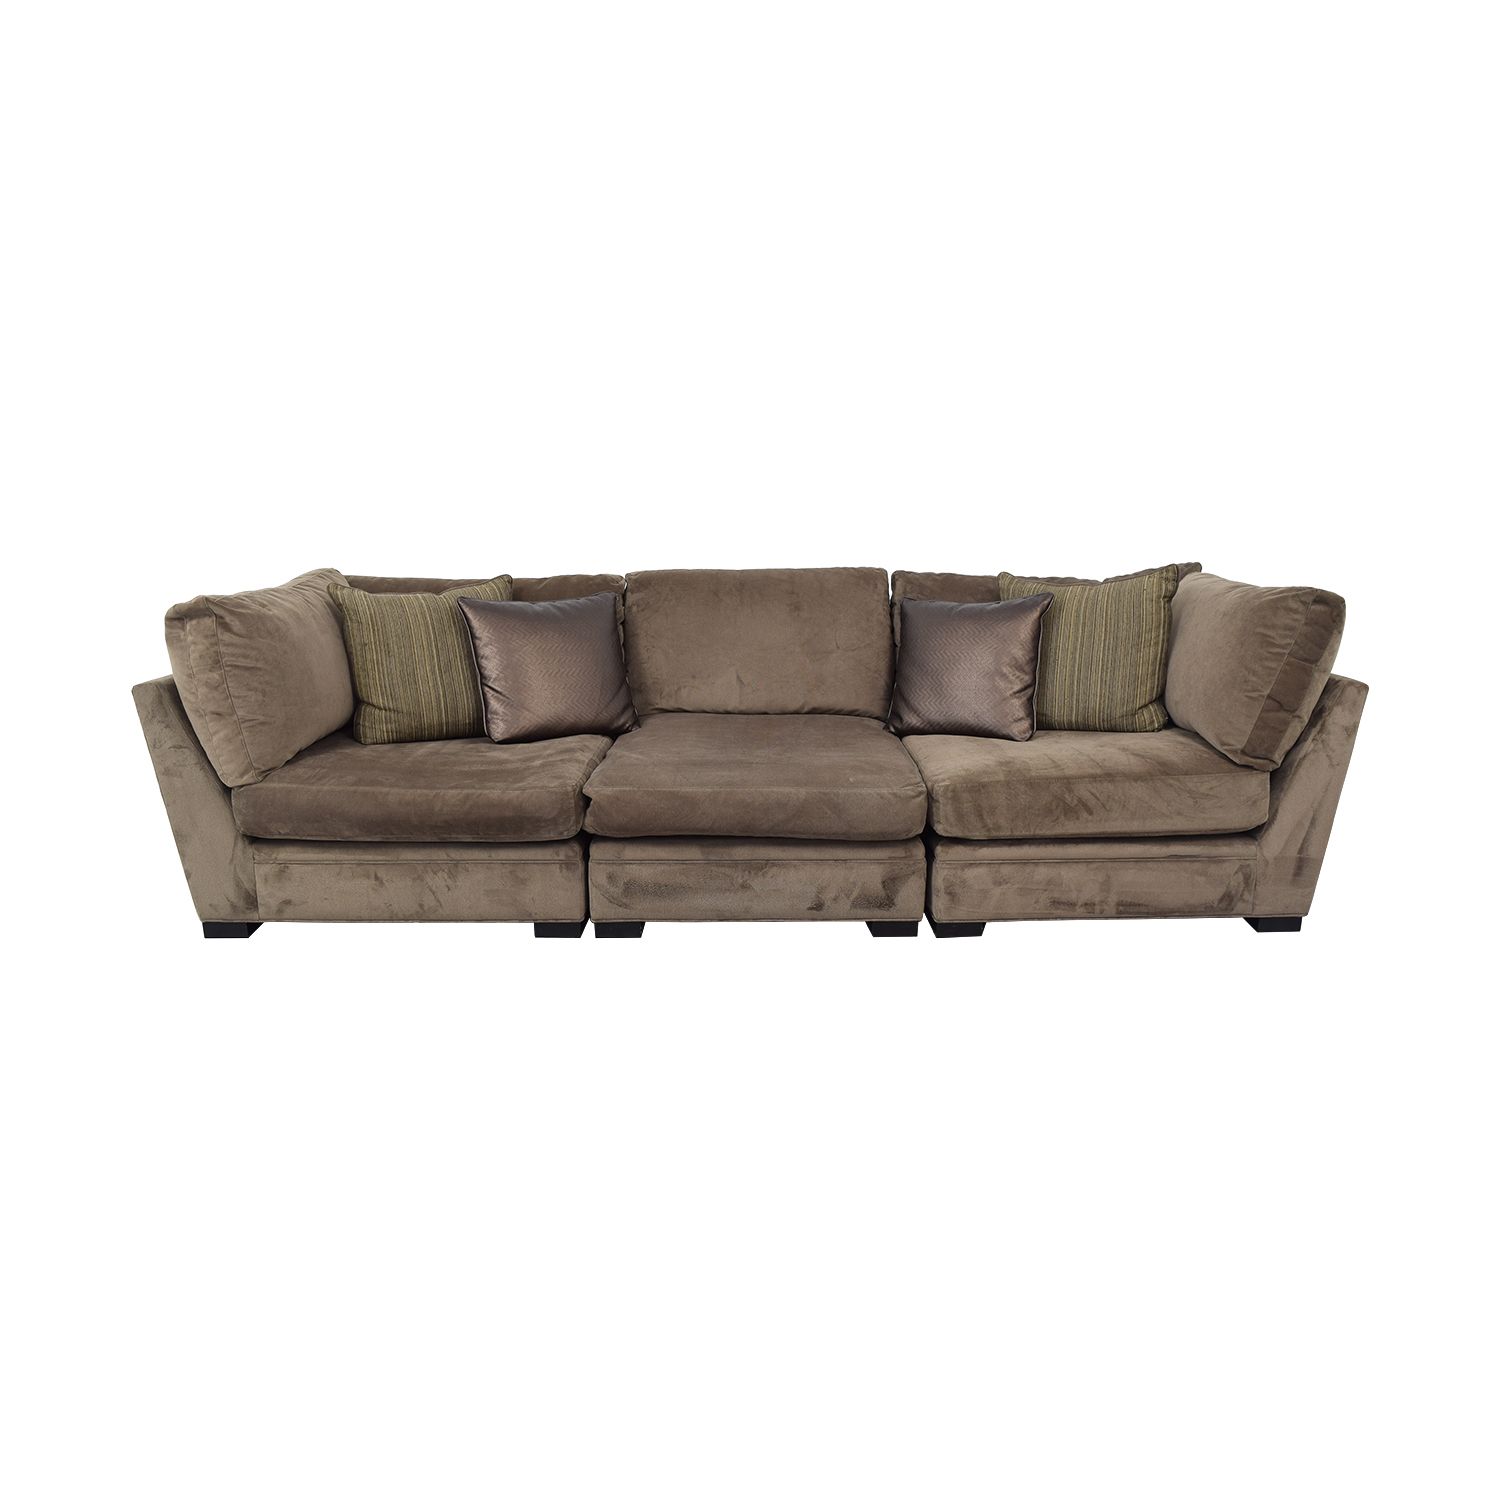 shop Raymour & Flanigan Cindy Crawford Home Microfiber Sofa Raymour & Flanigan Sofas